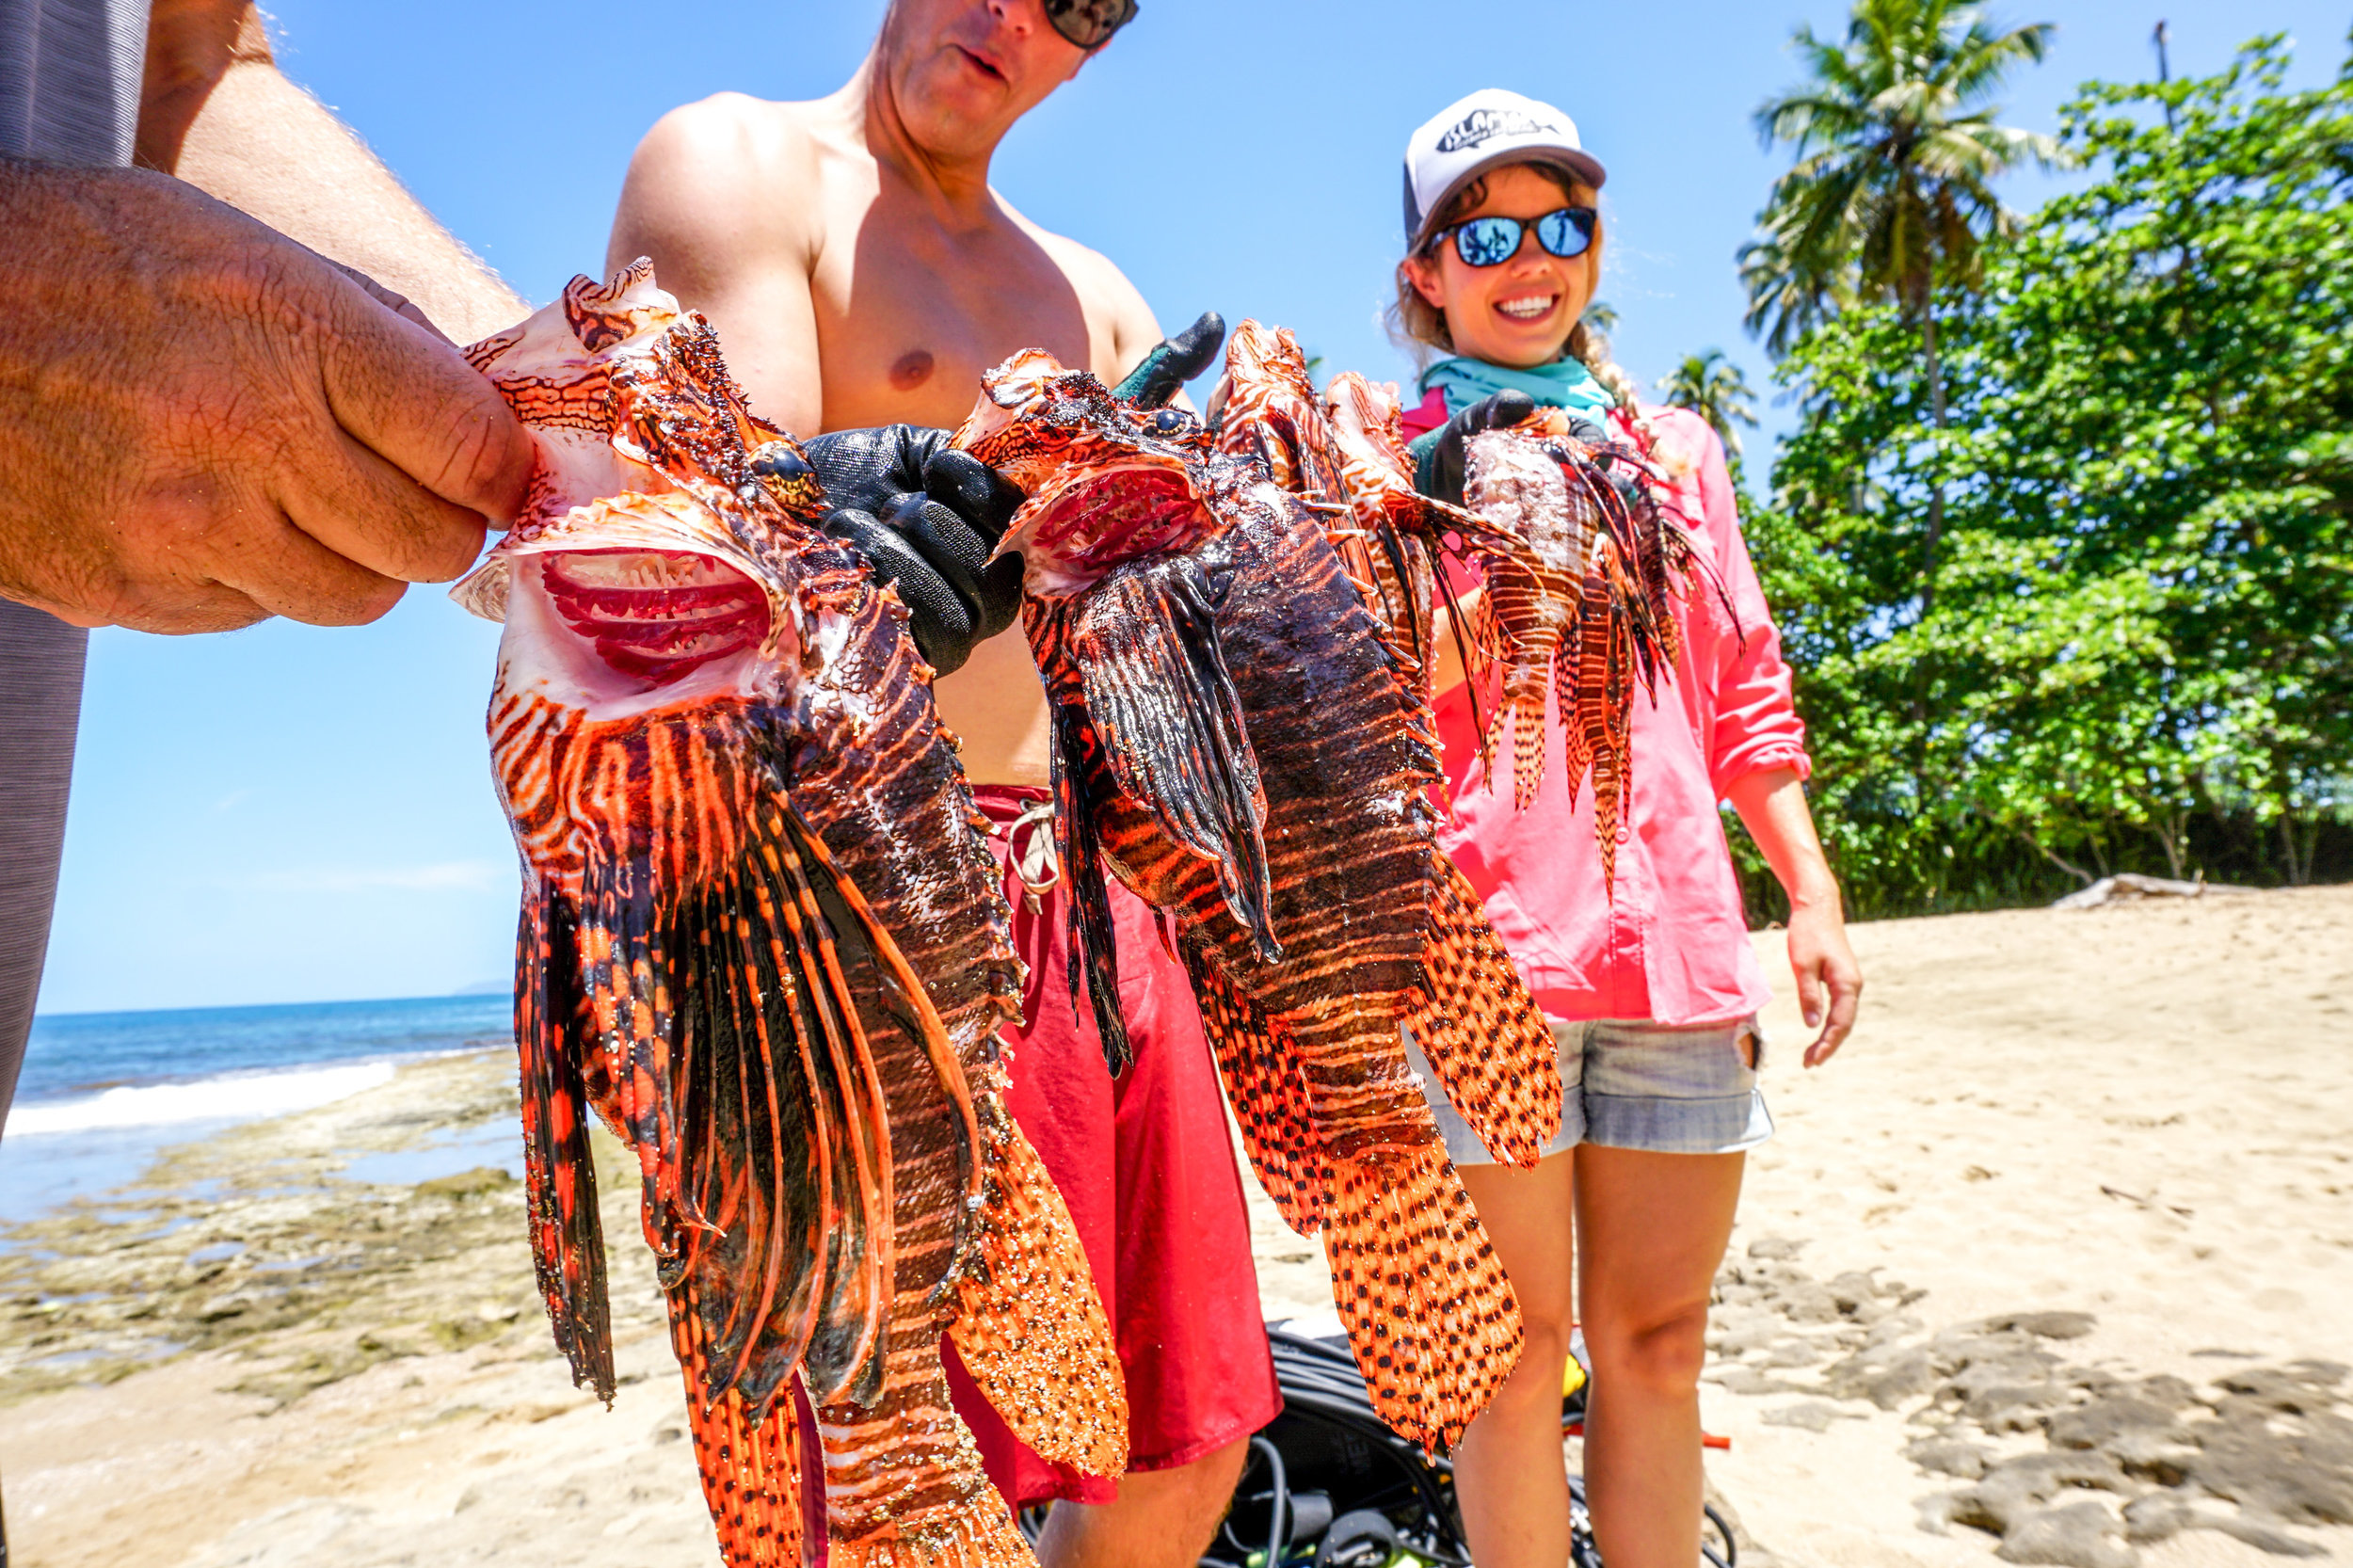 Lionfish of all life stages can be found in the Tres Palmas Marine Reserve.